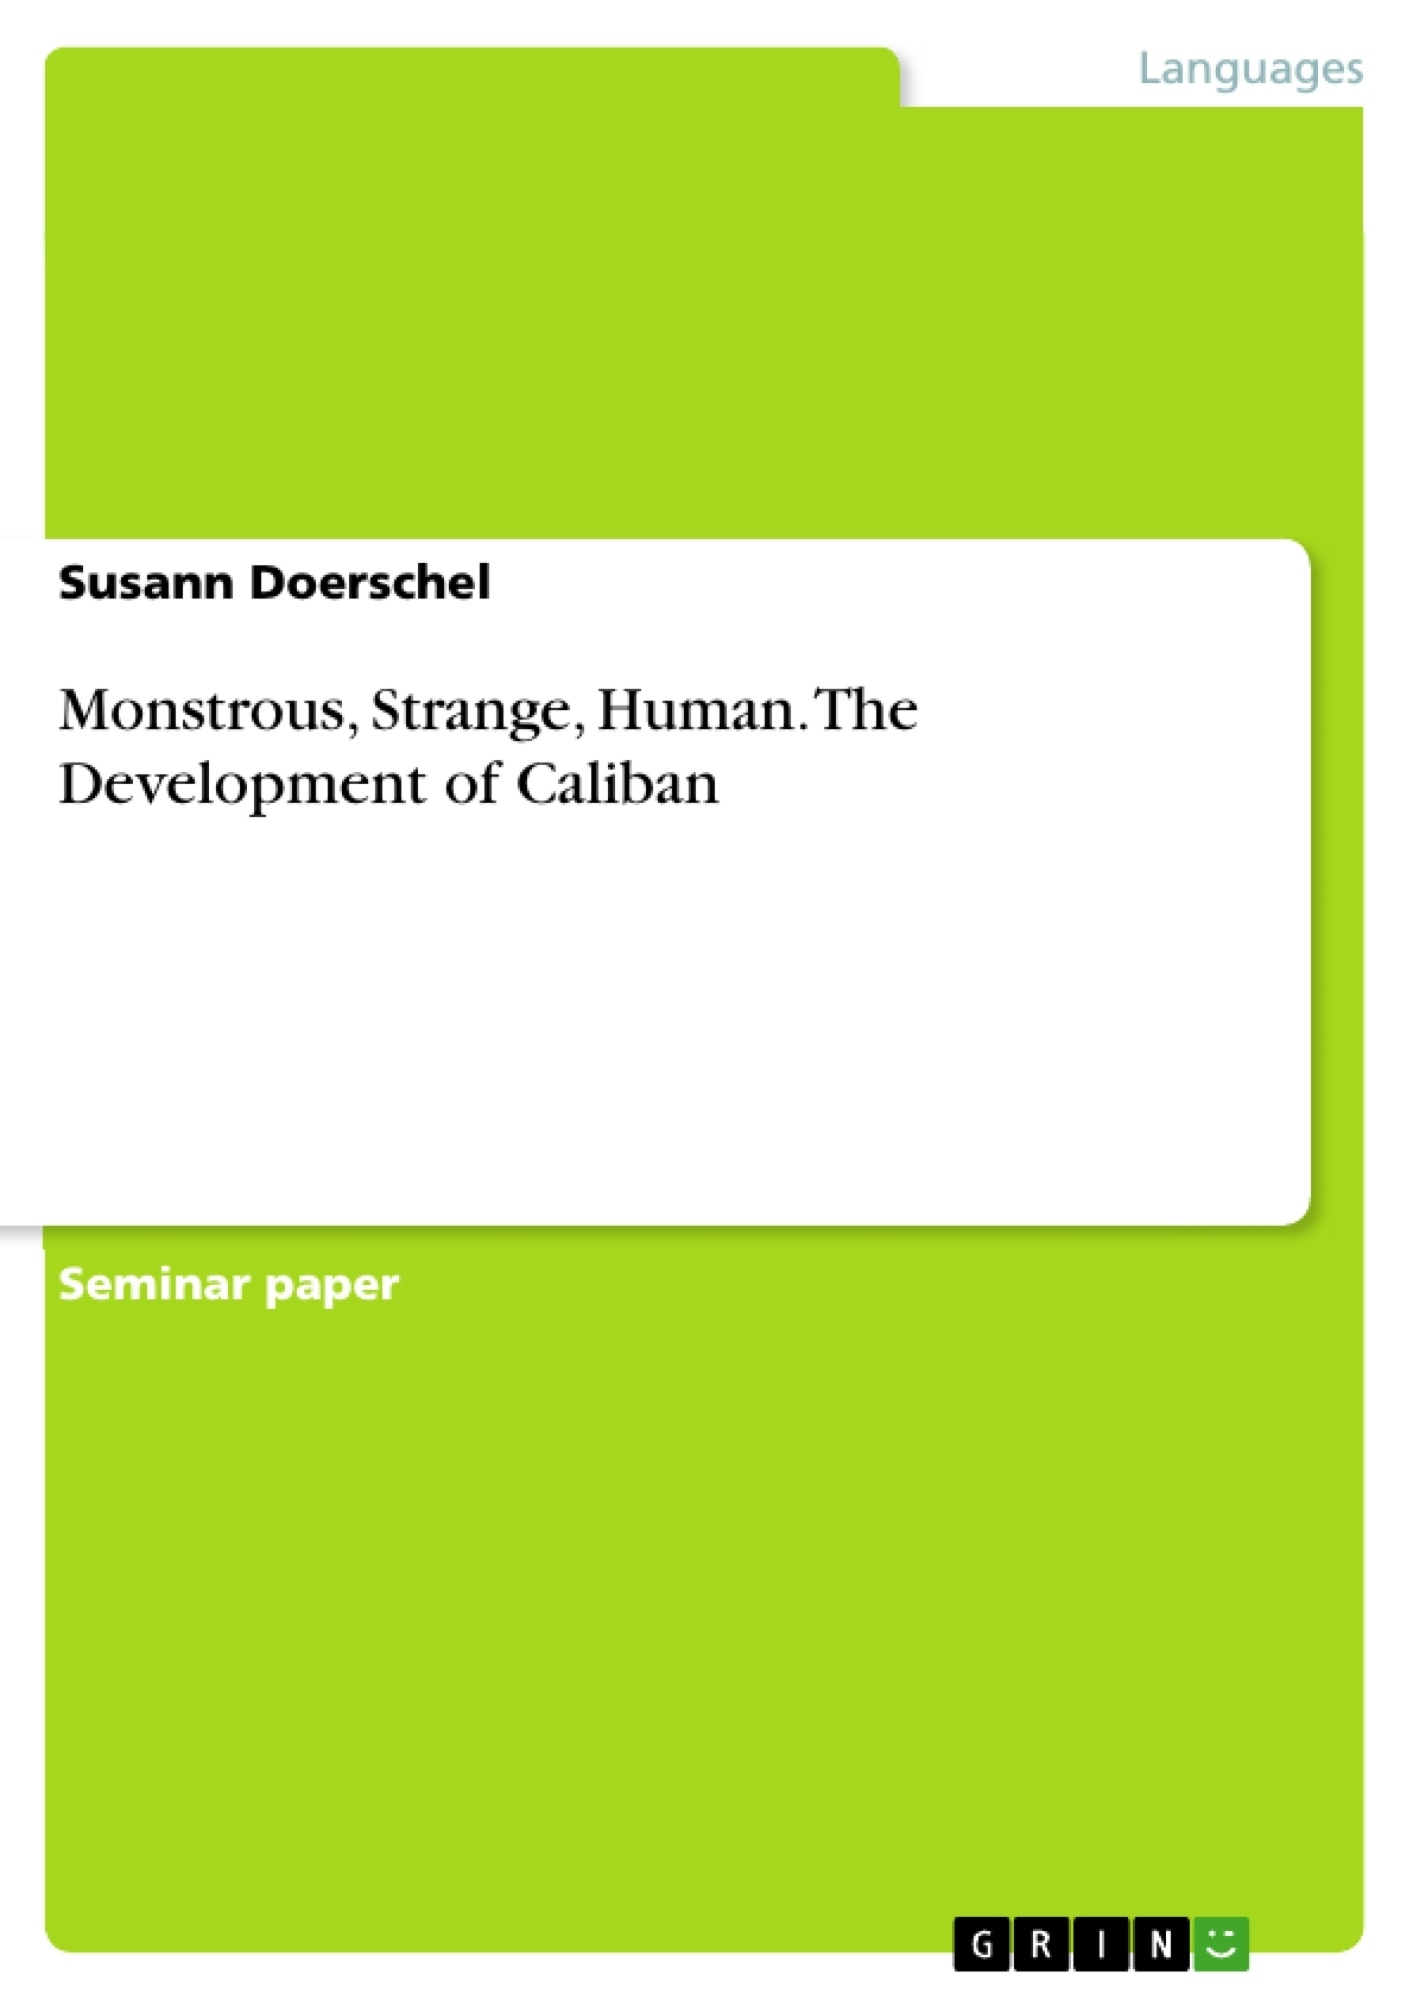 Title: Monstrous, Strange, Human. The Development of Caliban